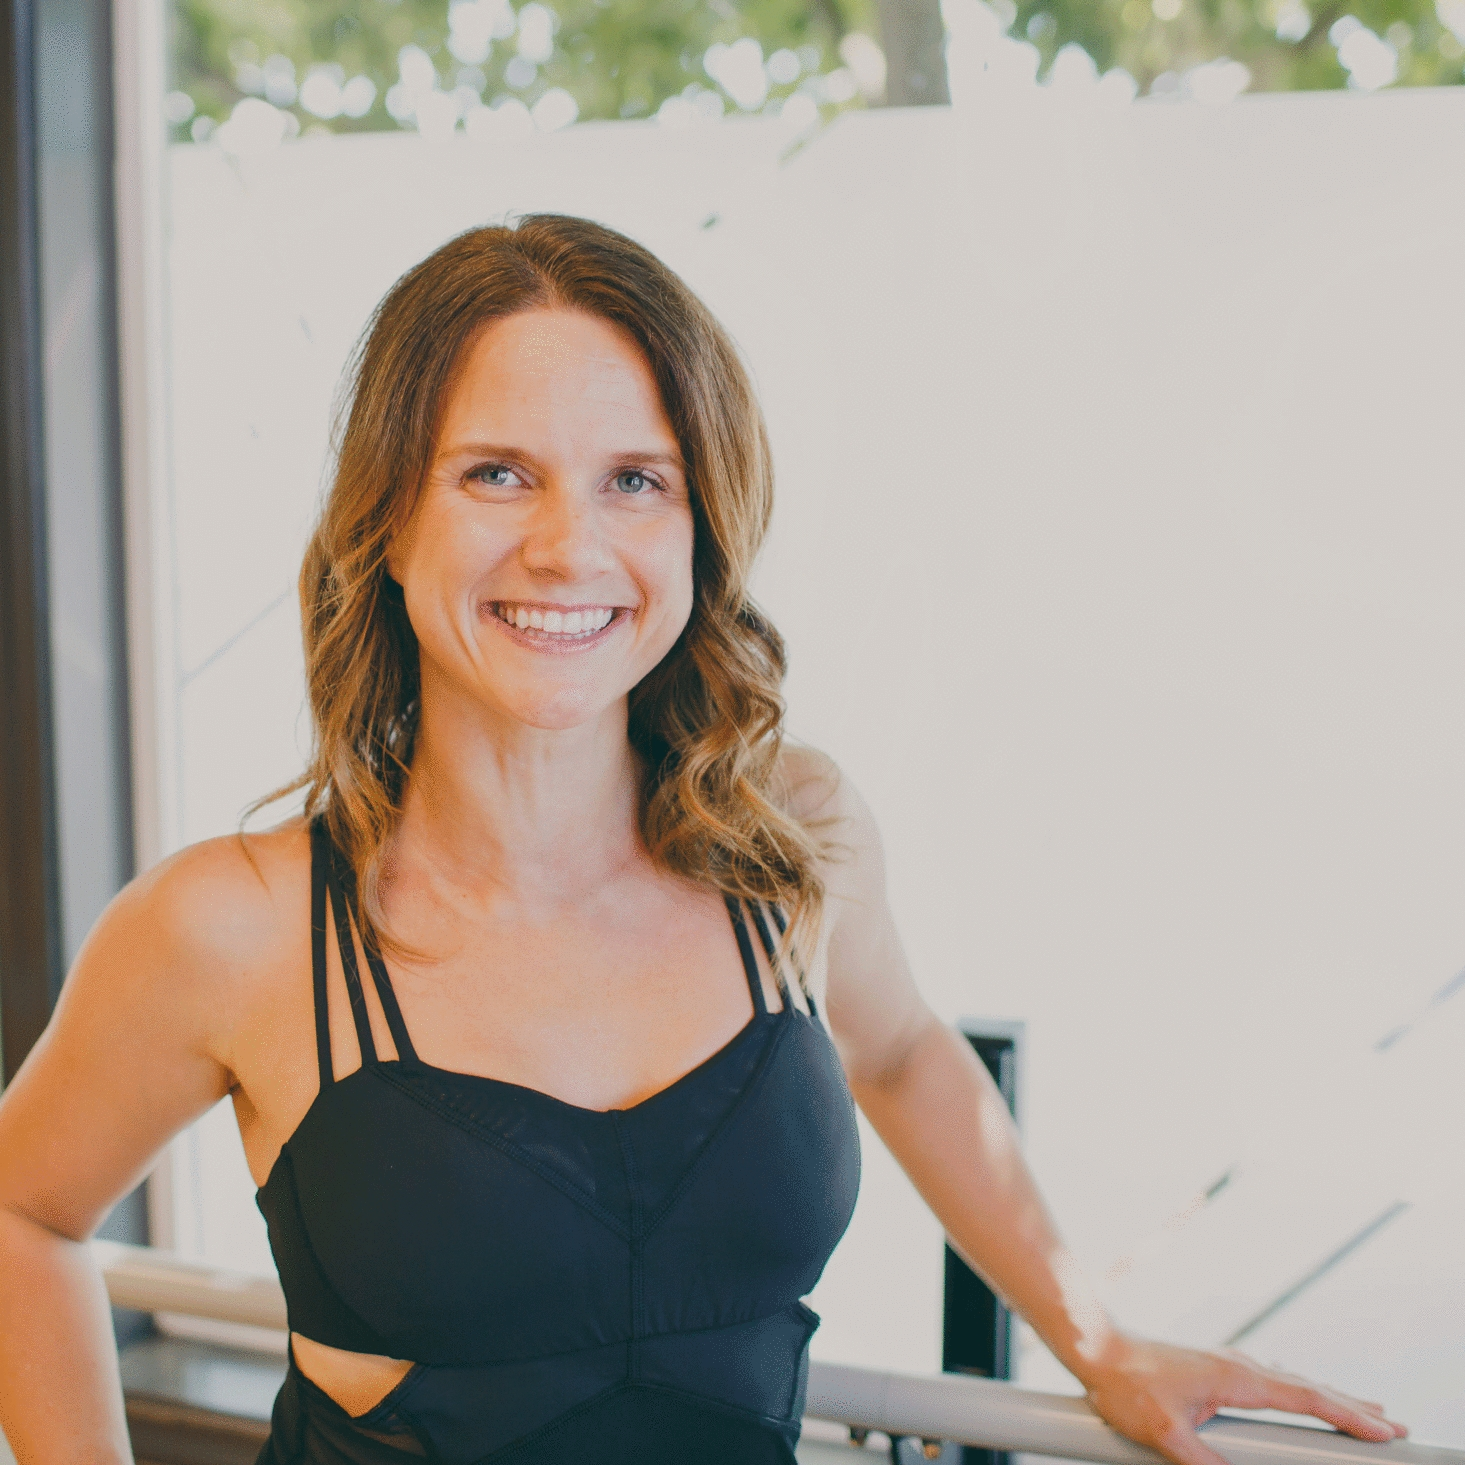 JENNIFER HORN   Co-Owner, BASI Certified Instructor, PMA®-CPT, IIN Certified Health Coach,   bootybarre Master Trainer, GYROTONIC® Certified Apprentice